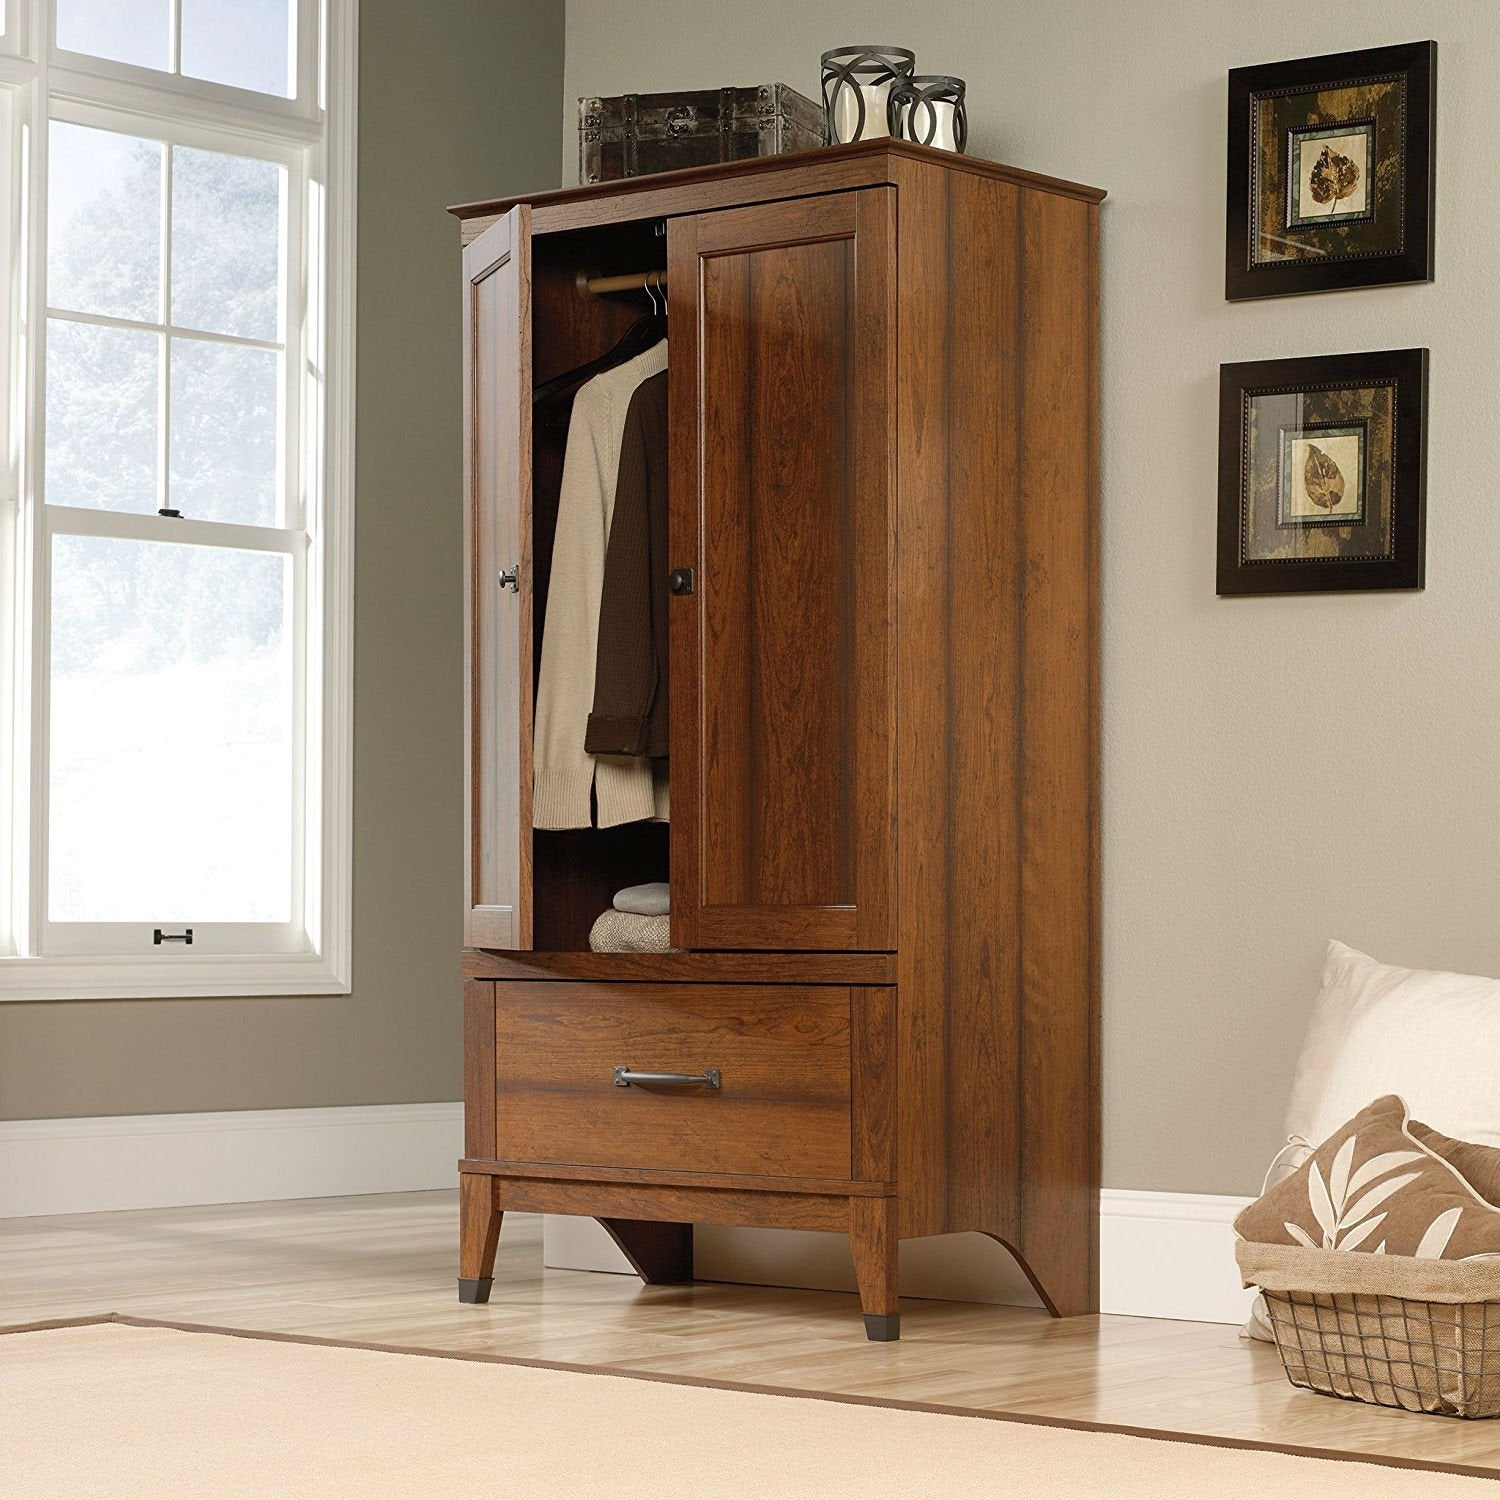 Bedroom Wardrobe Cabinet Storage Armoire in Medium Brown Cherry Wood Finish